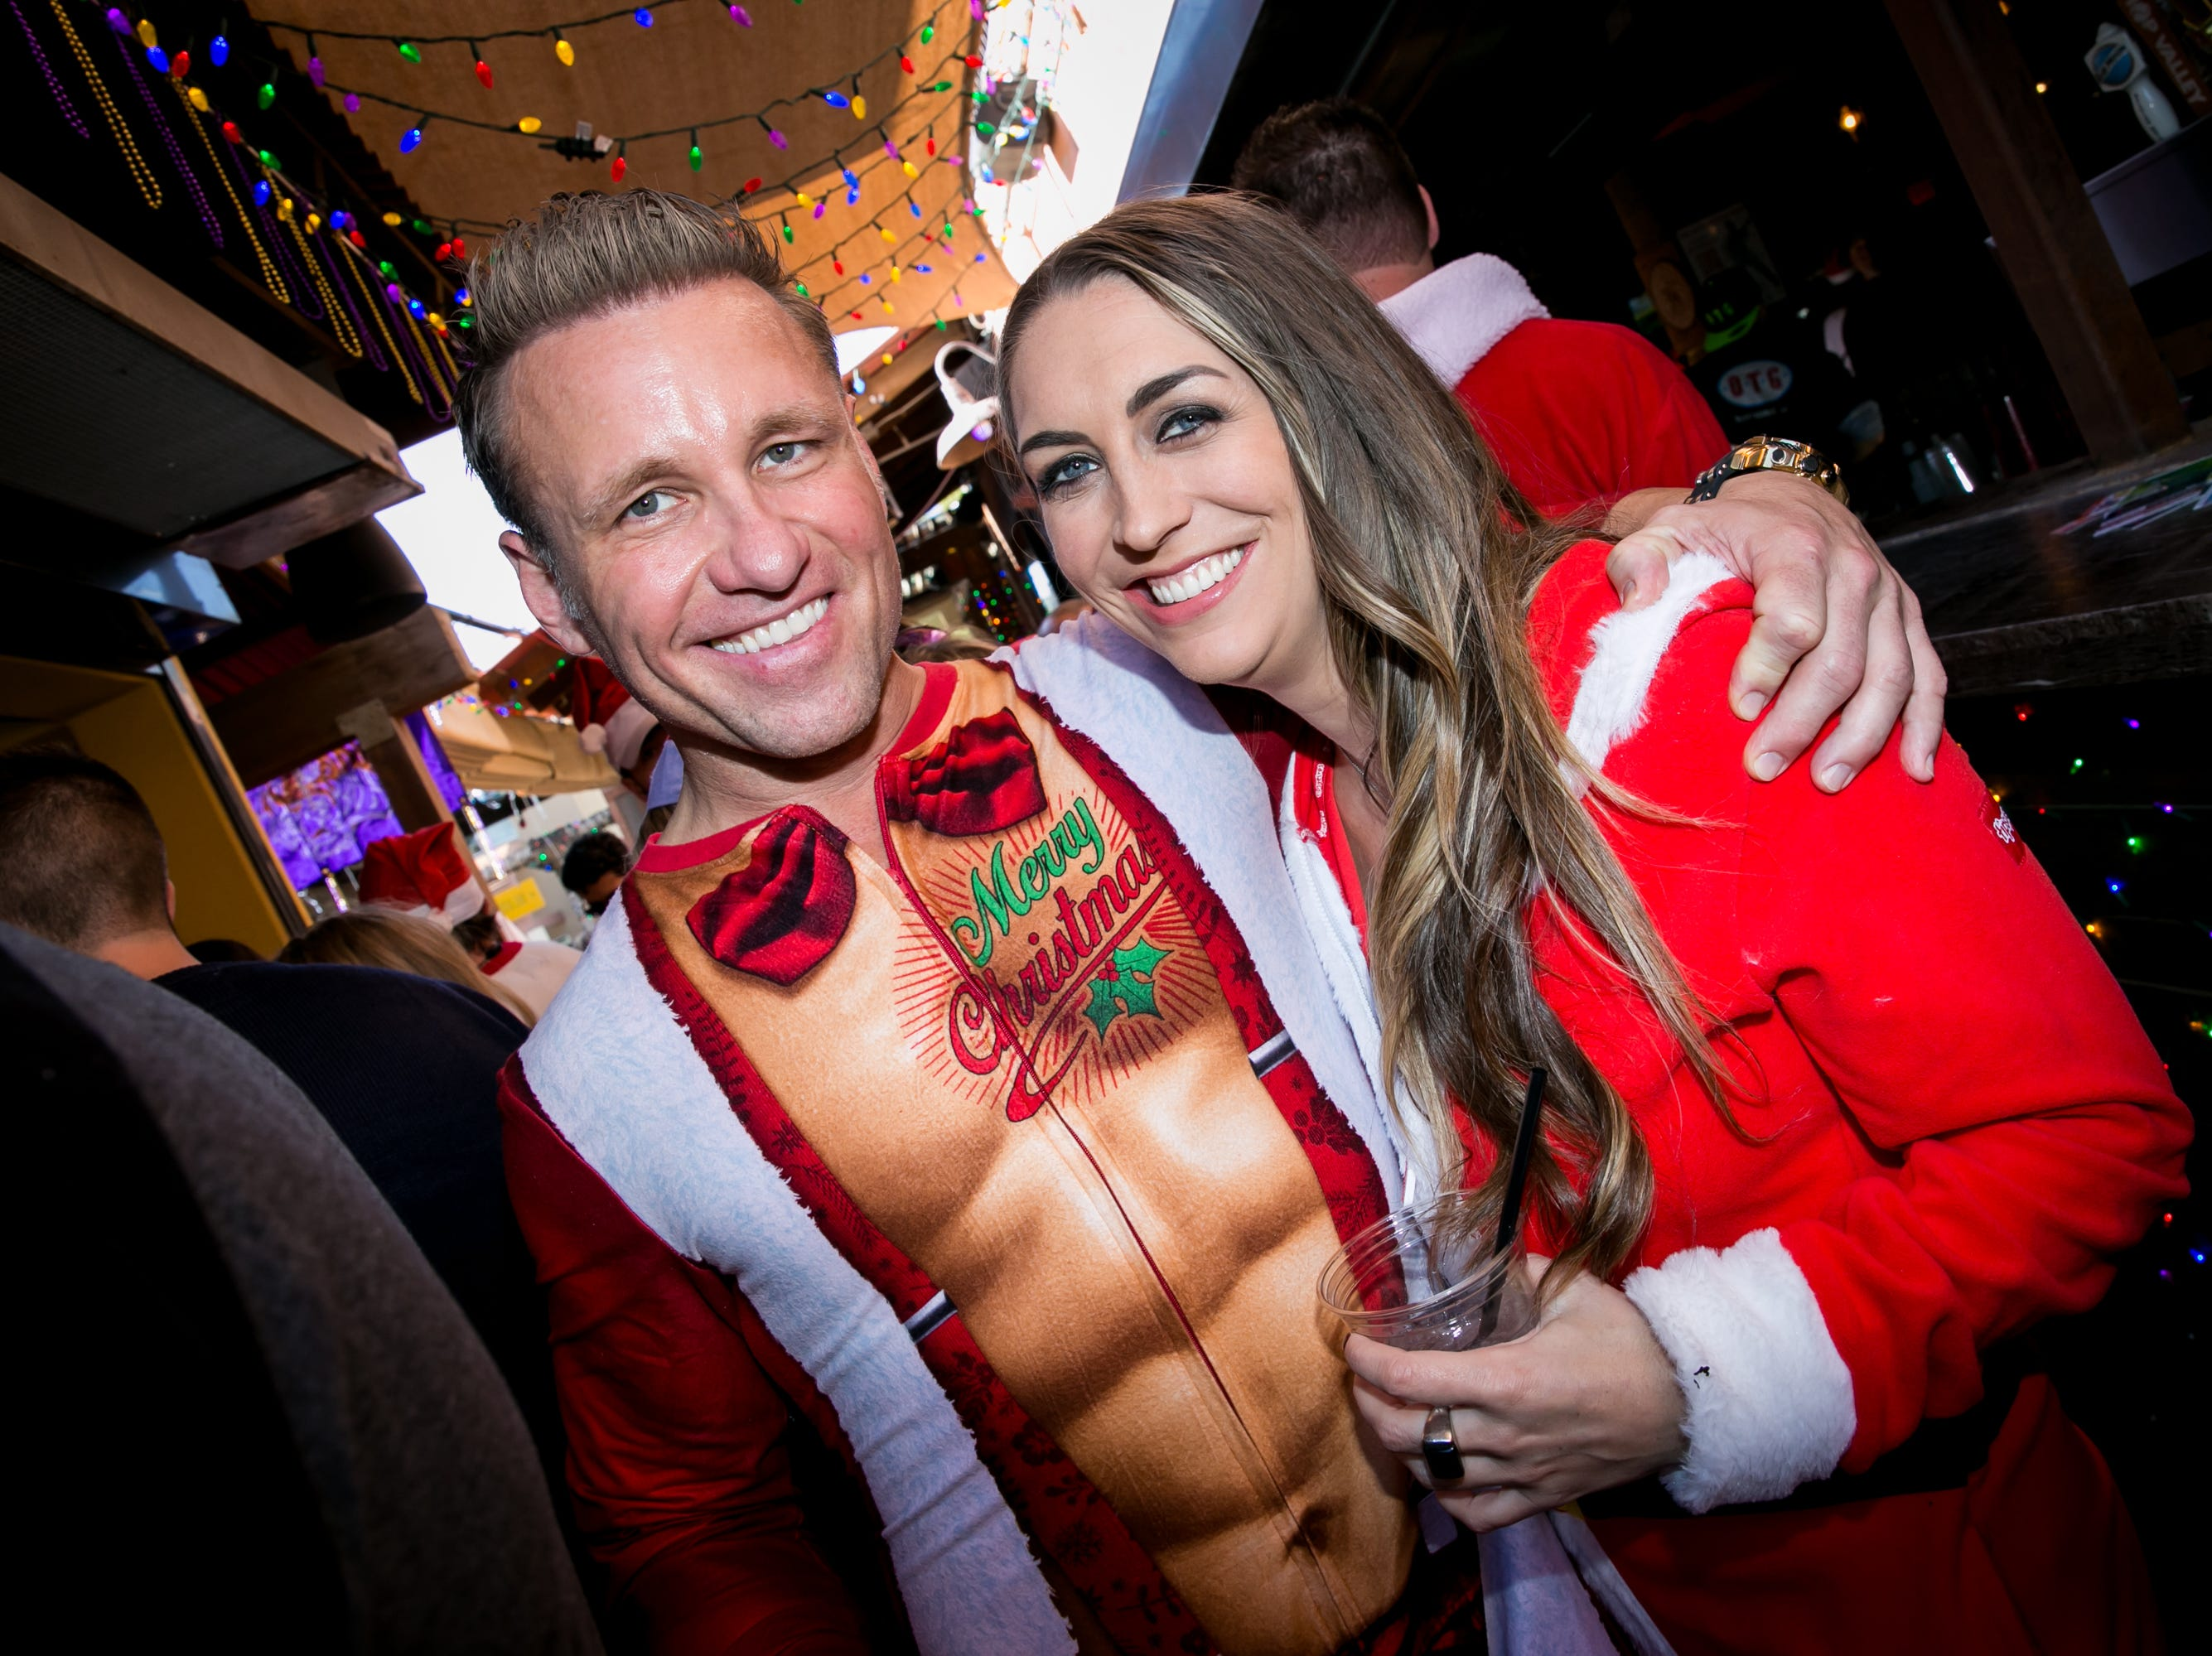 This duo had a great choice in outfits during the Scottsdale Santa Crawl at Old Town Gringos on Saturday, December 8, 2018.